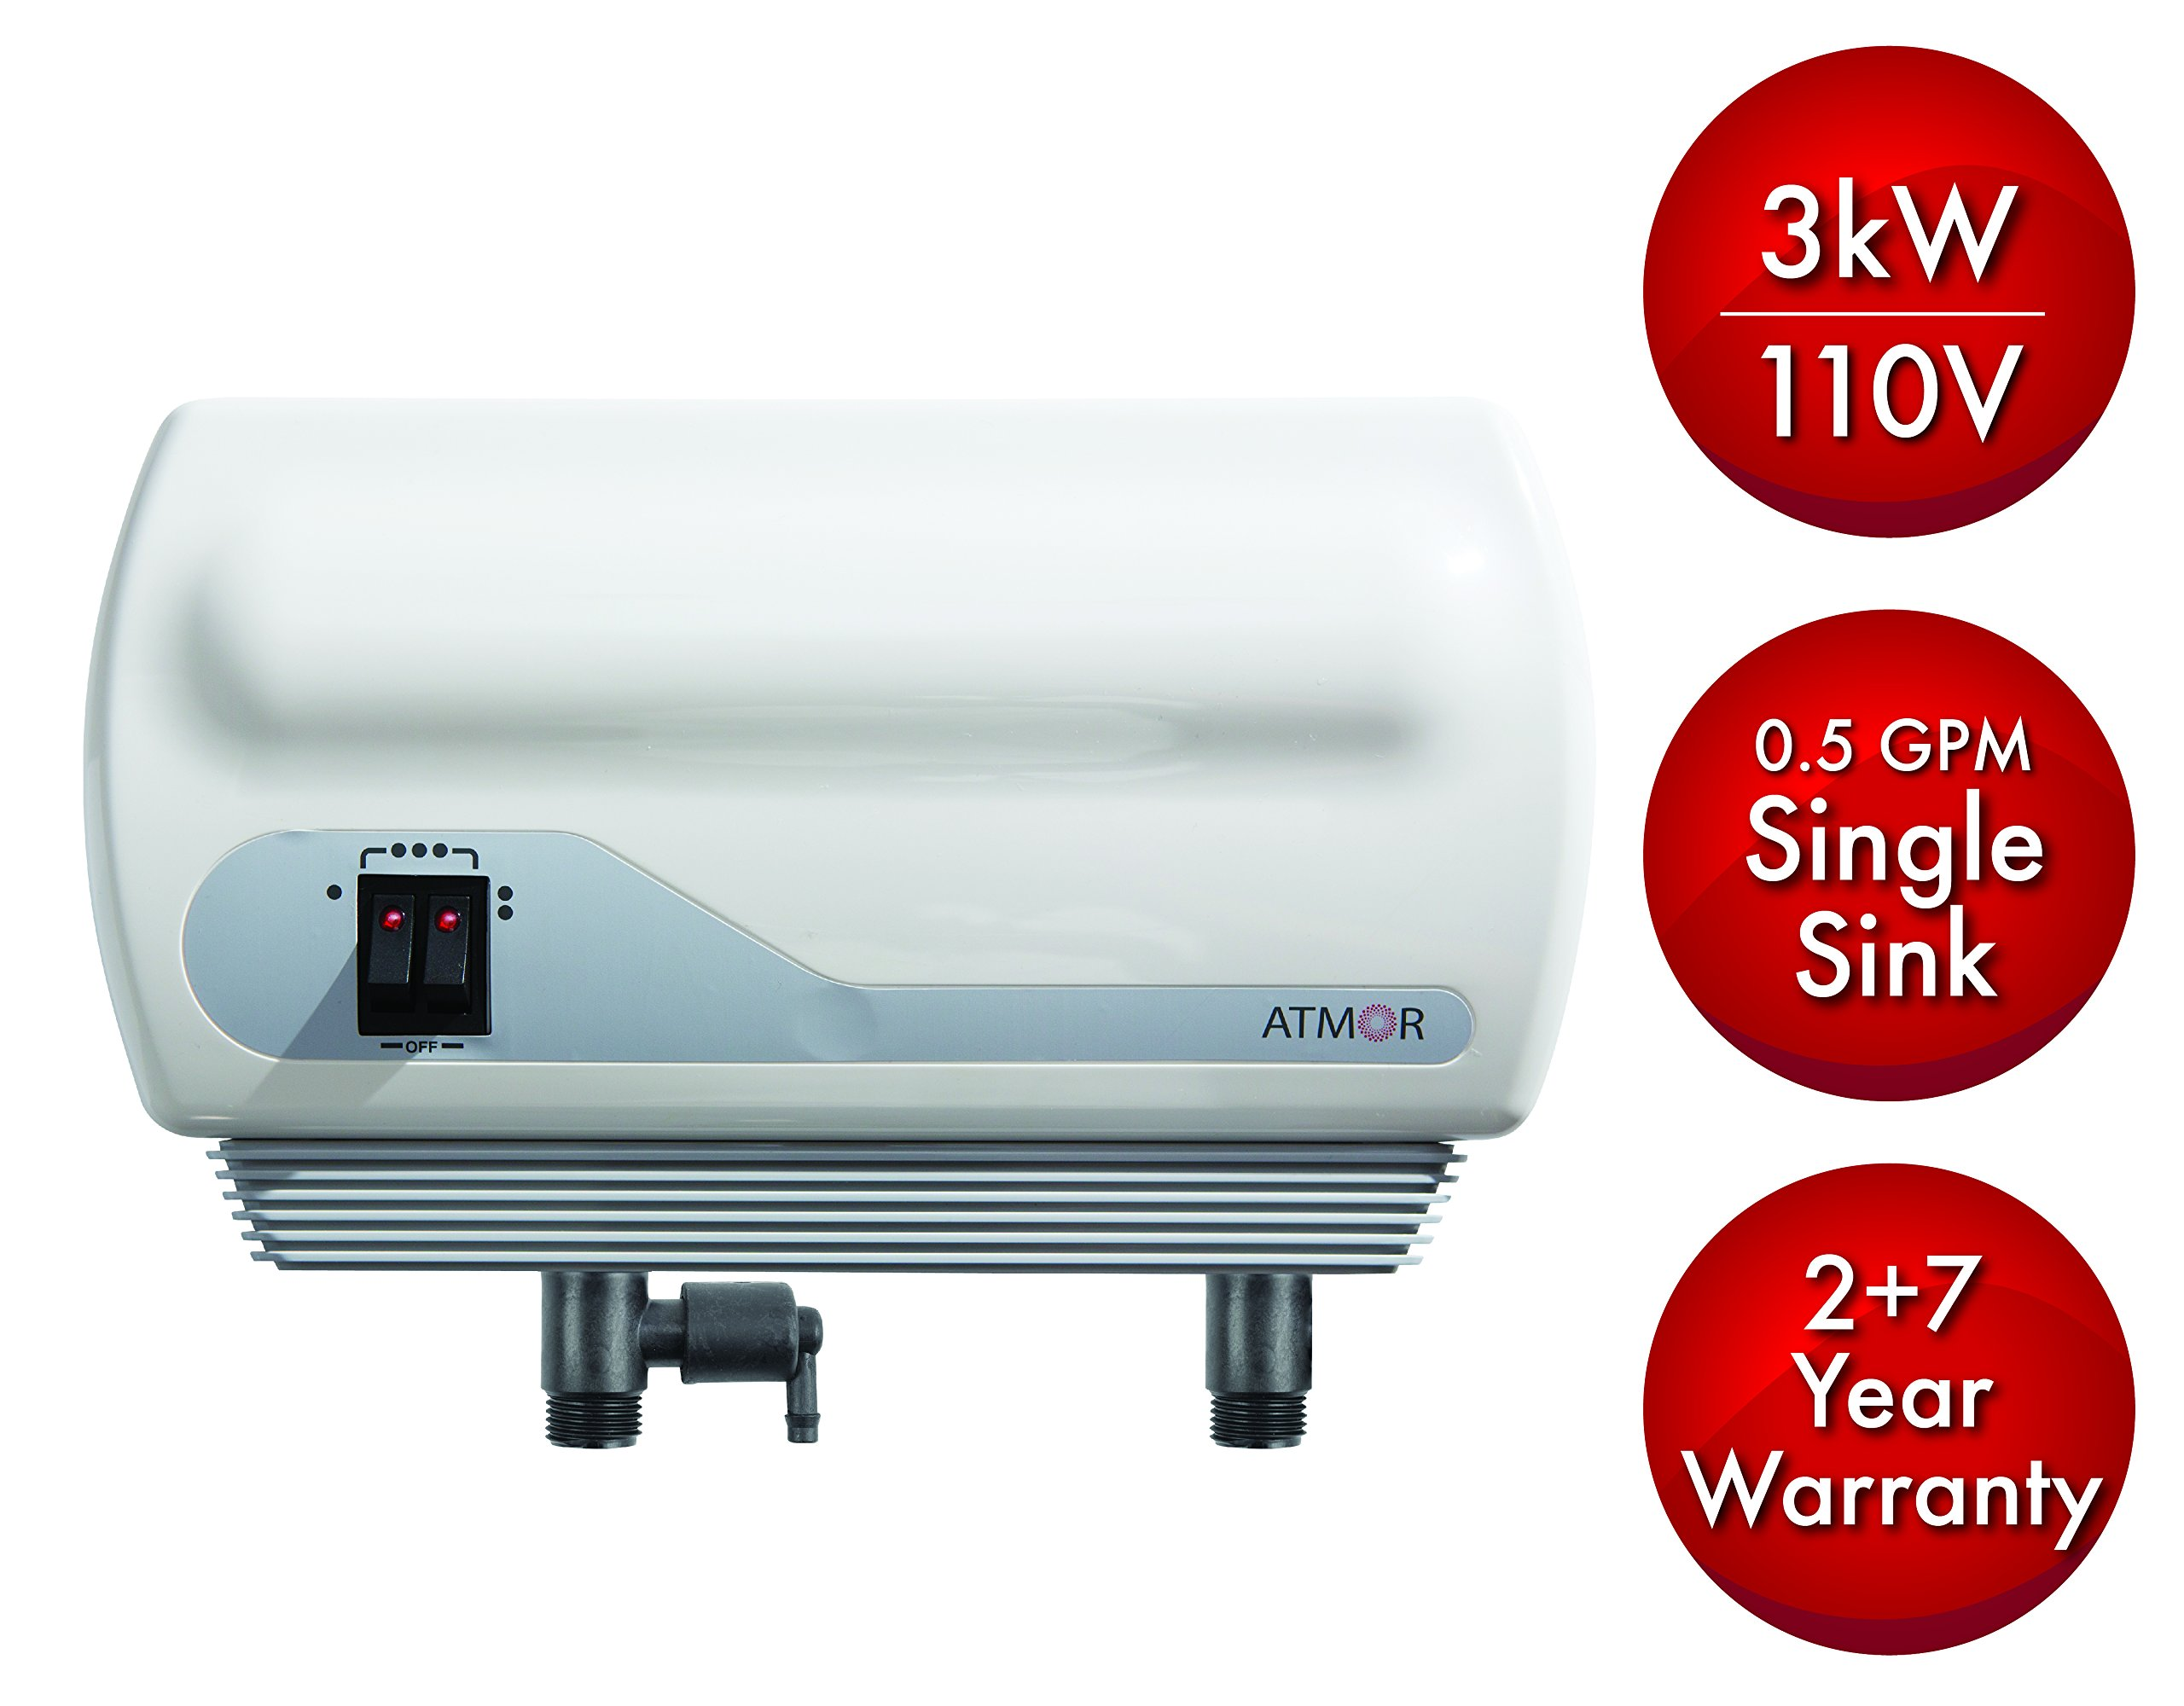 Atmor AT-900-03 Single Sink 3kw/110V, 0.5 GPM Point-Of-Use Tankless Electric Water Heater and 0.5 GMP Sink Aerator by Atmor